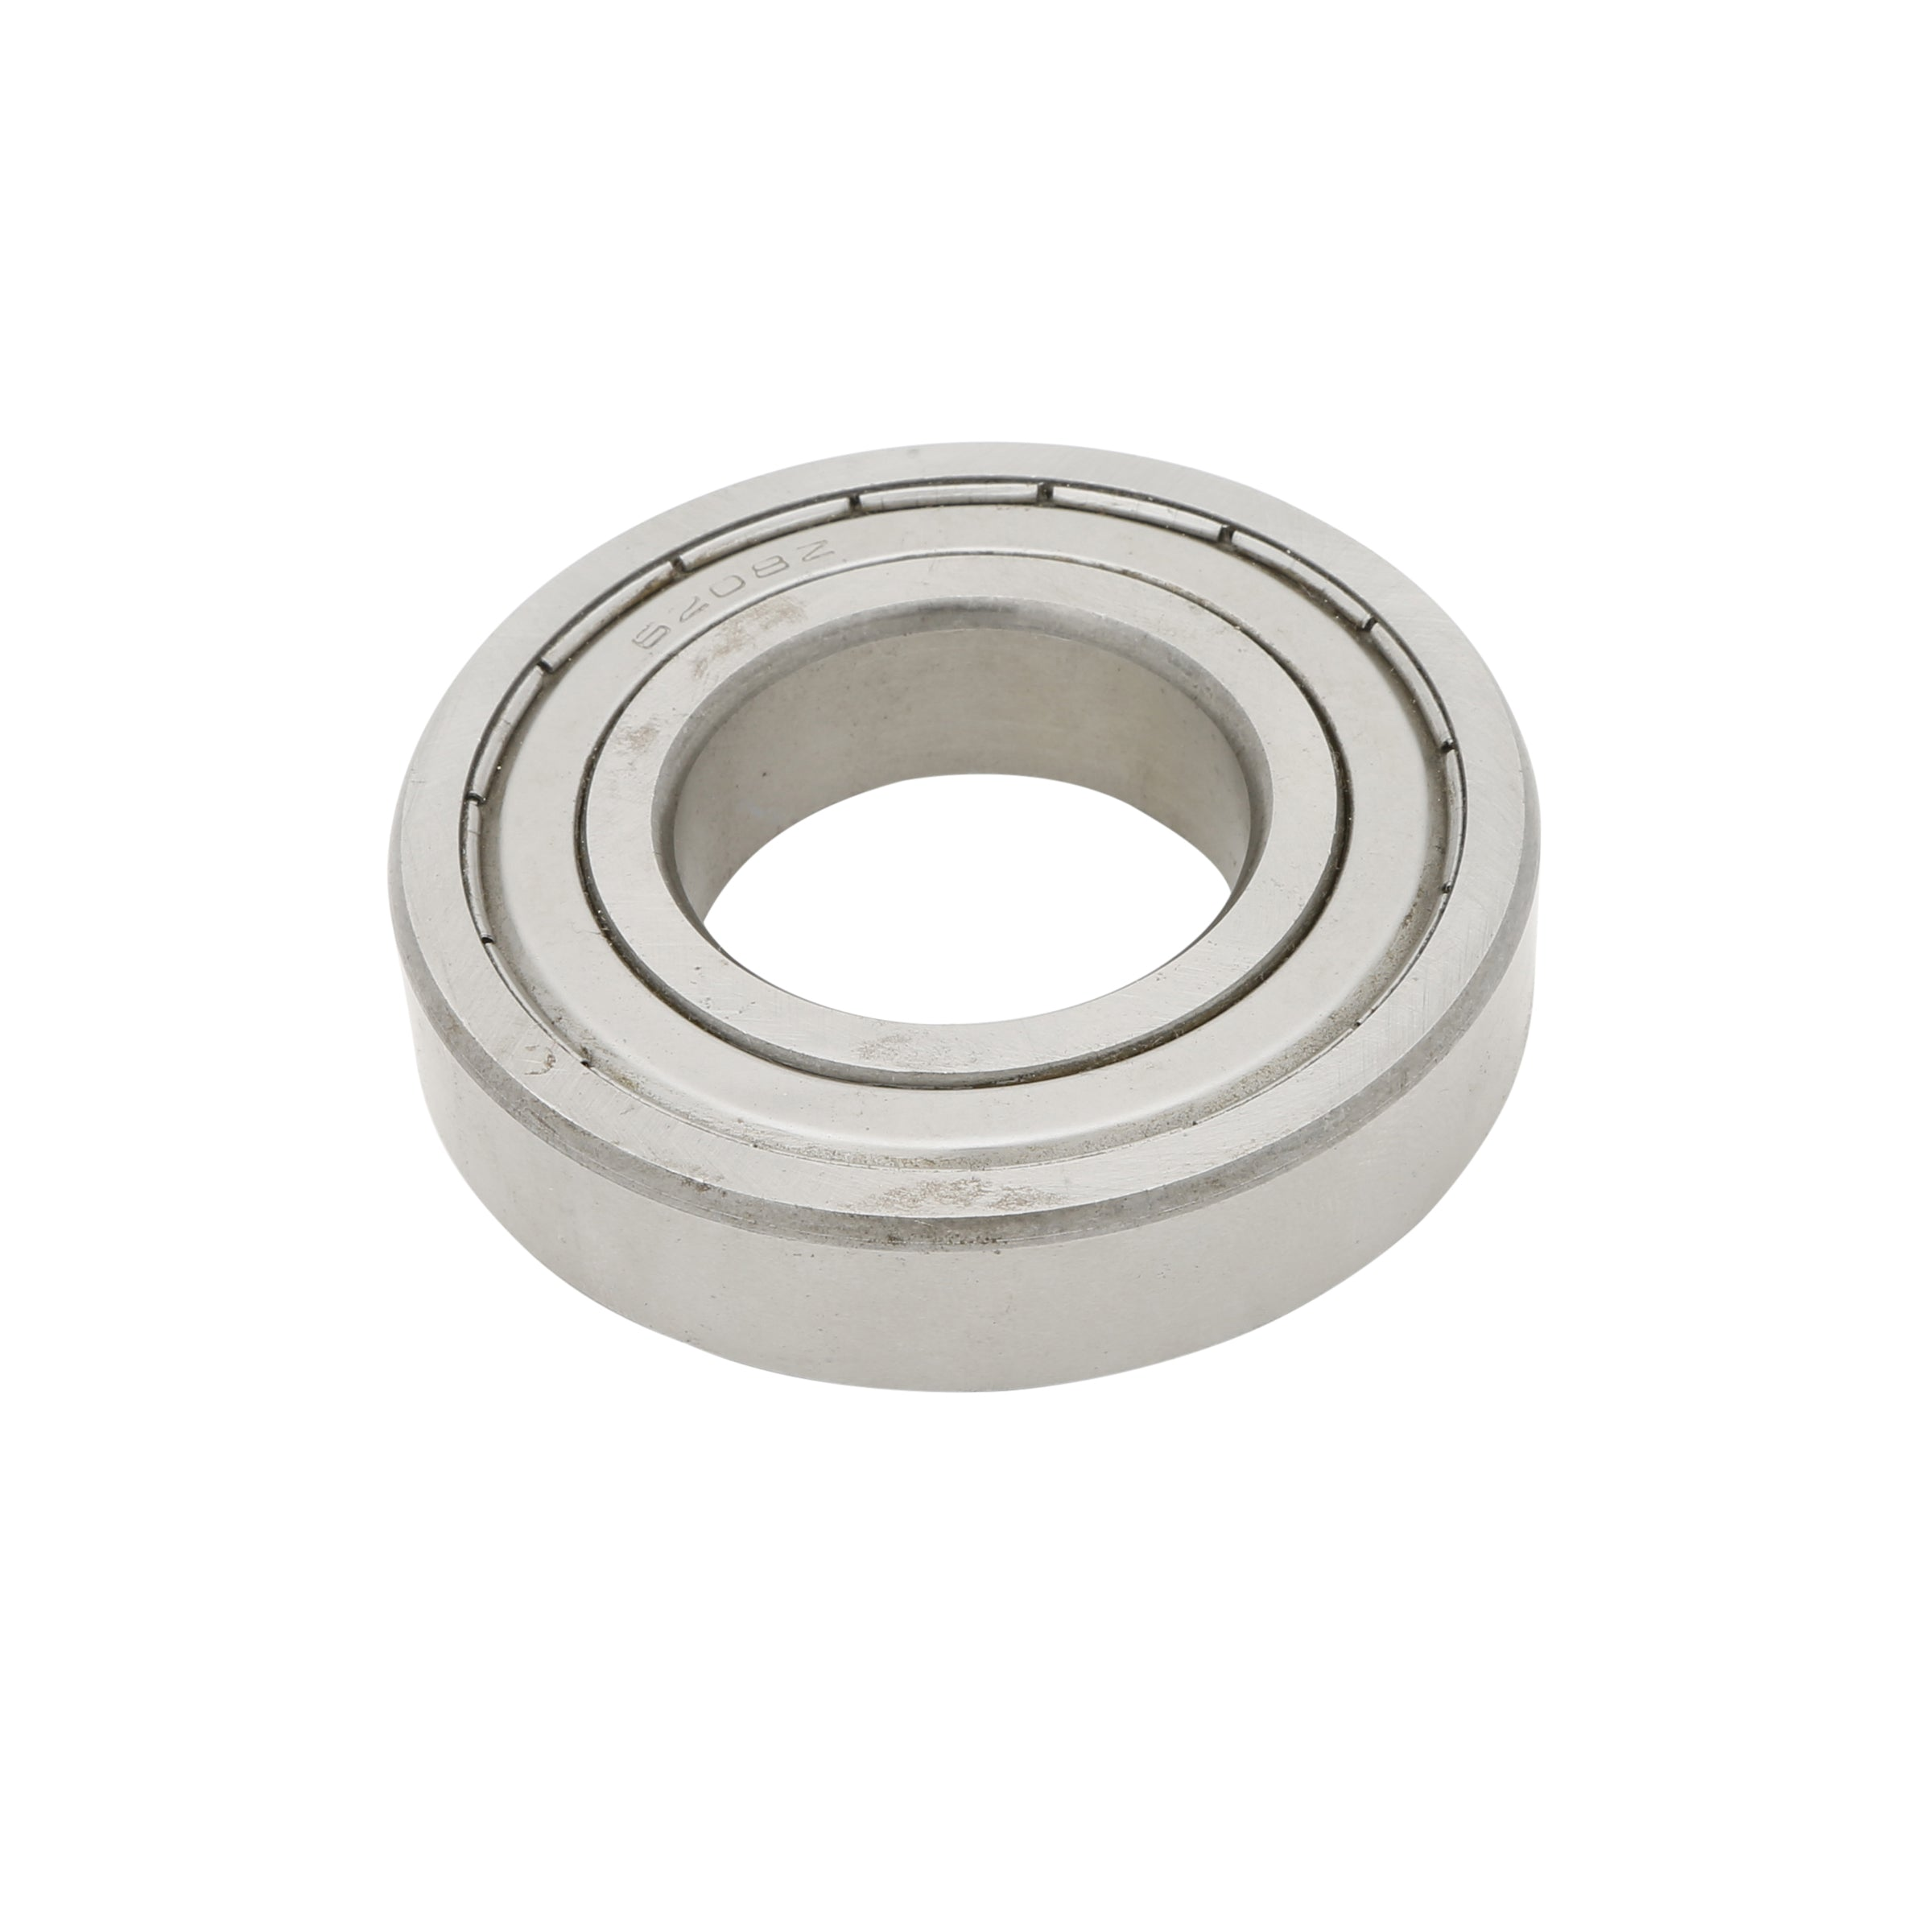 Transmission Ball Bearing • Main Drive Gear